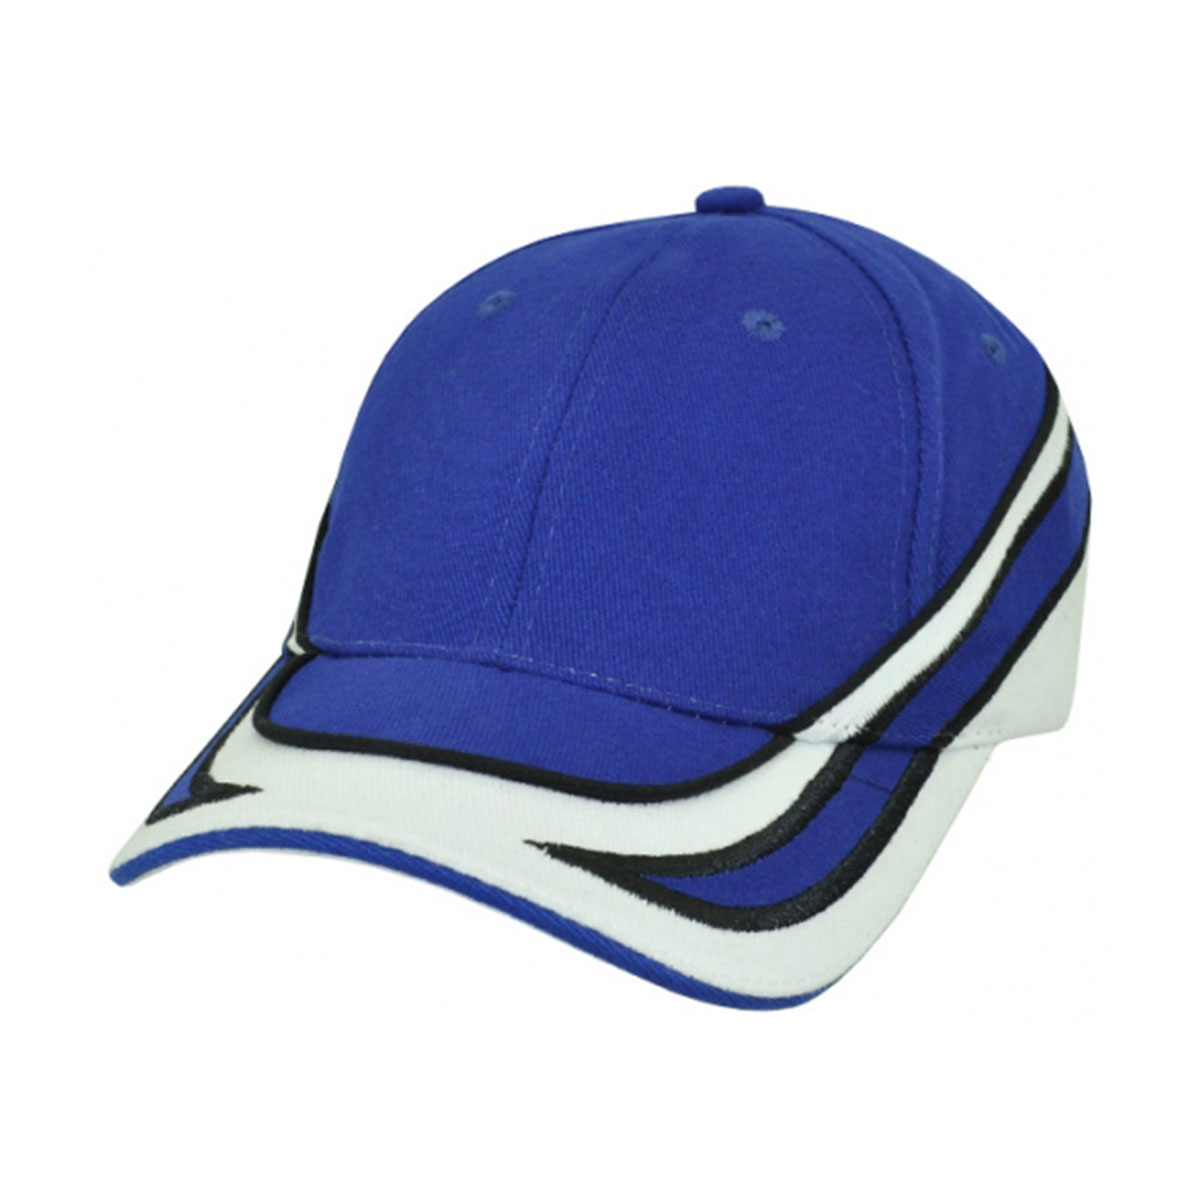 Emporer Cap-Royal / Black / White